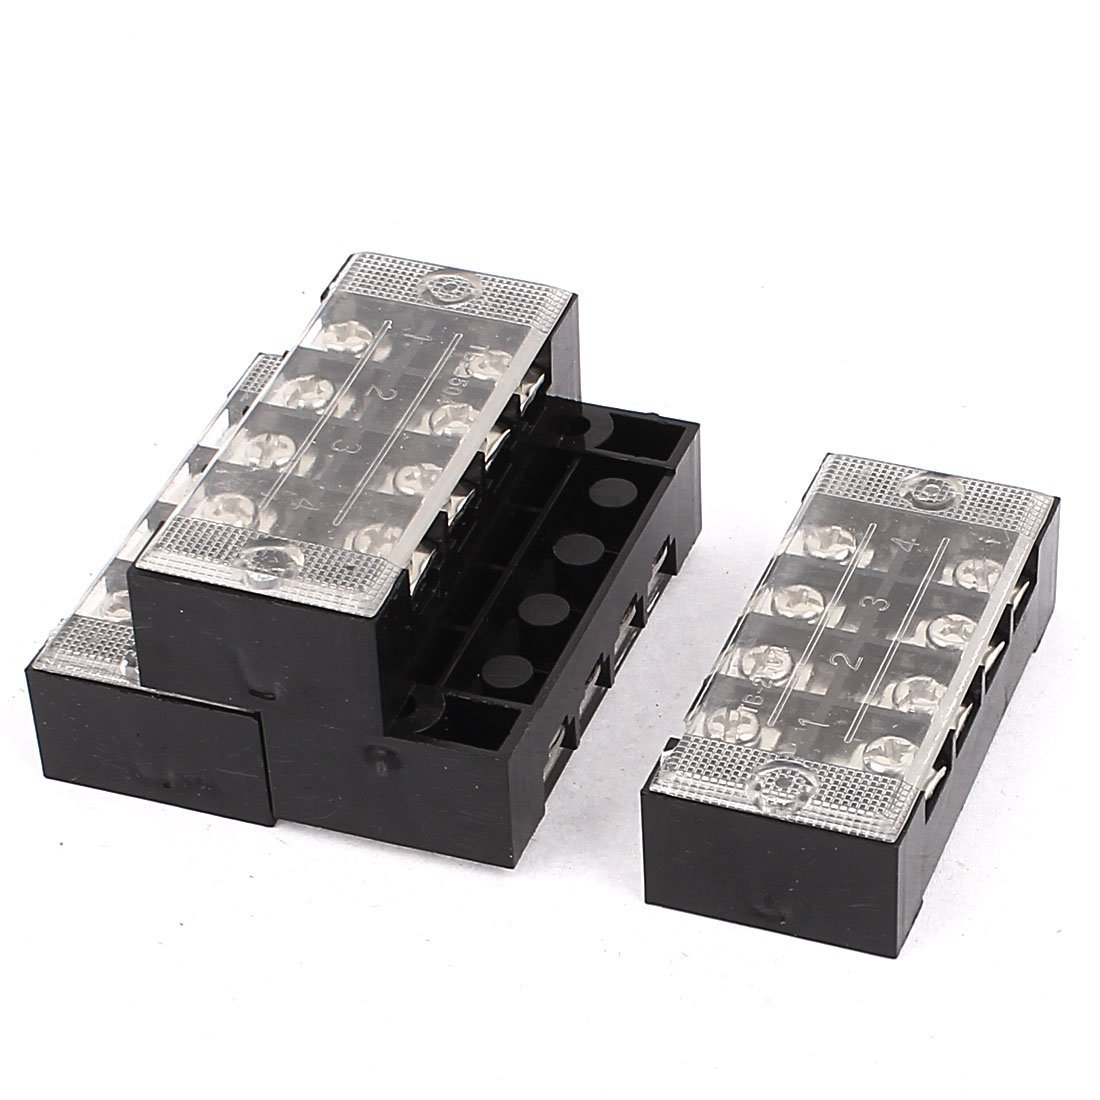 Aexit 4 Pcs 600V 25A 4P Dual Row Barrier Terminal Block Cable Connector Bar